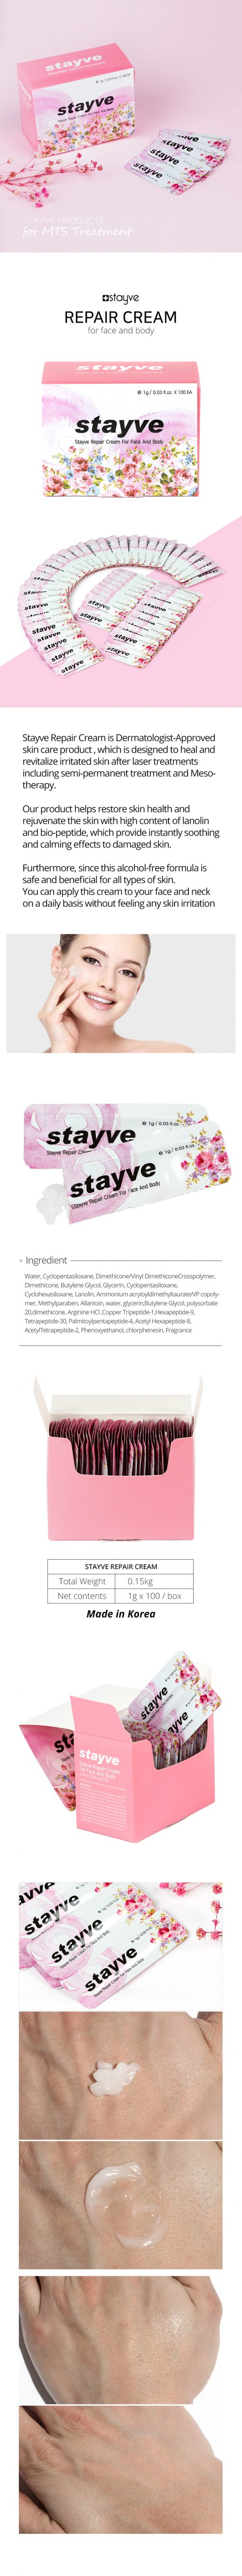 Best Skin Repair Cream for Face | Stayve Repair Cream | BB Glow UK